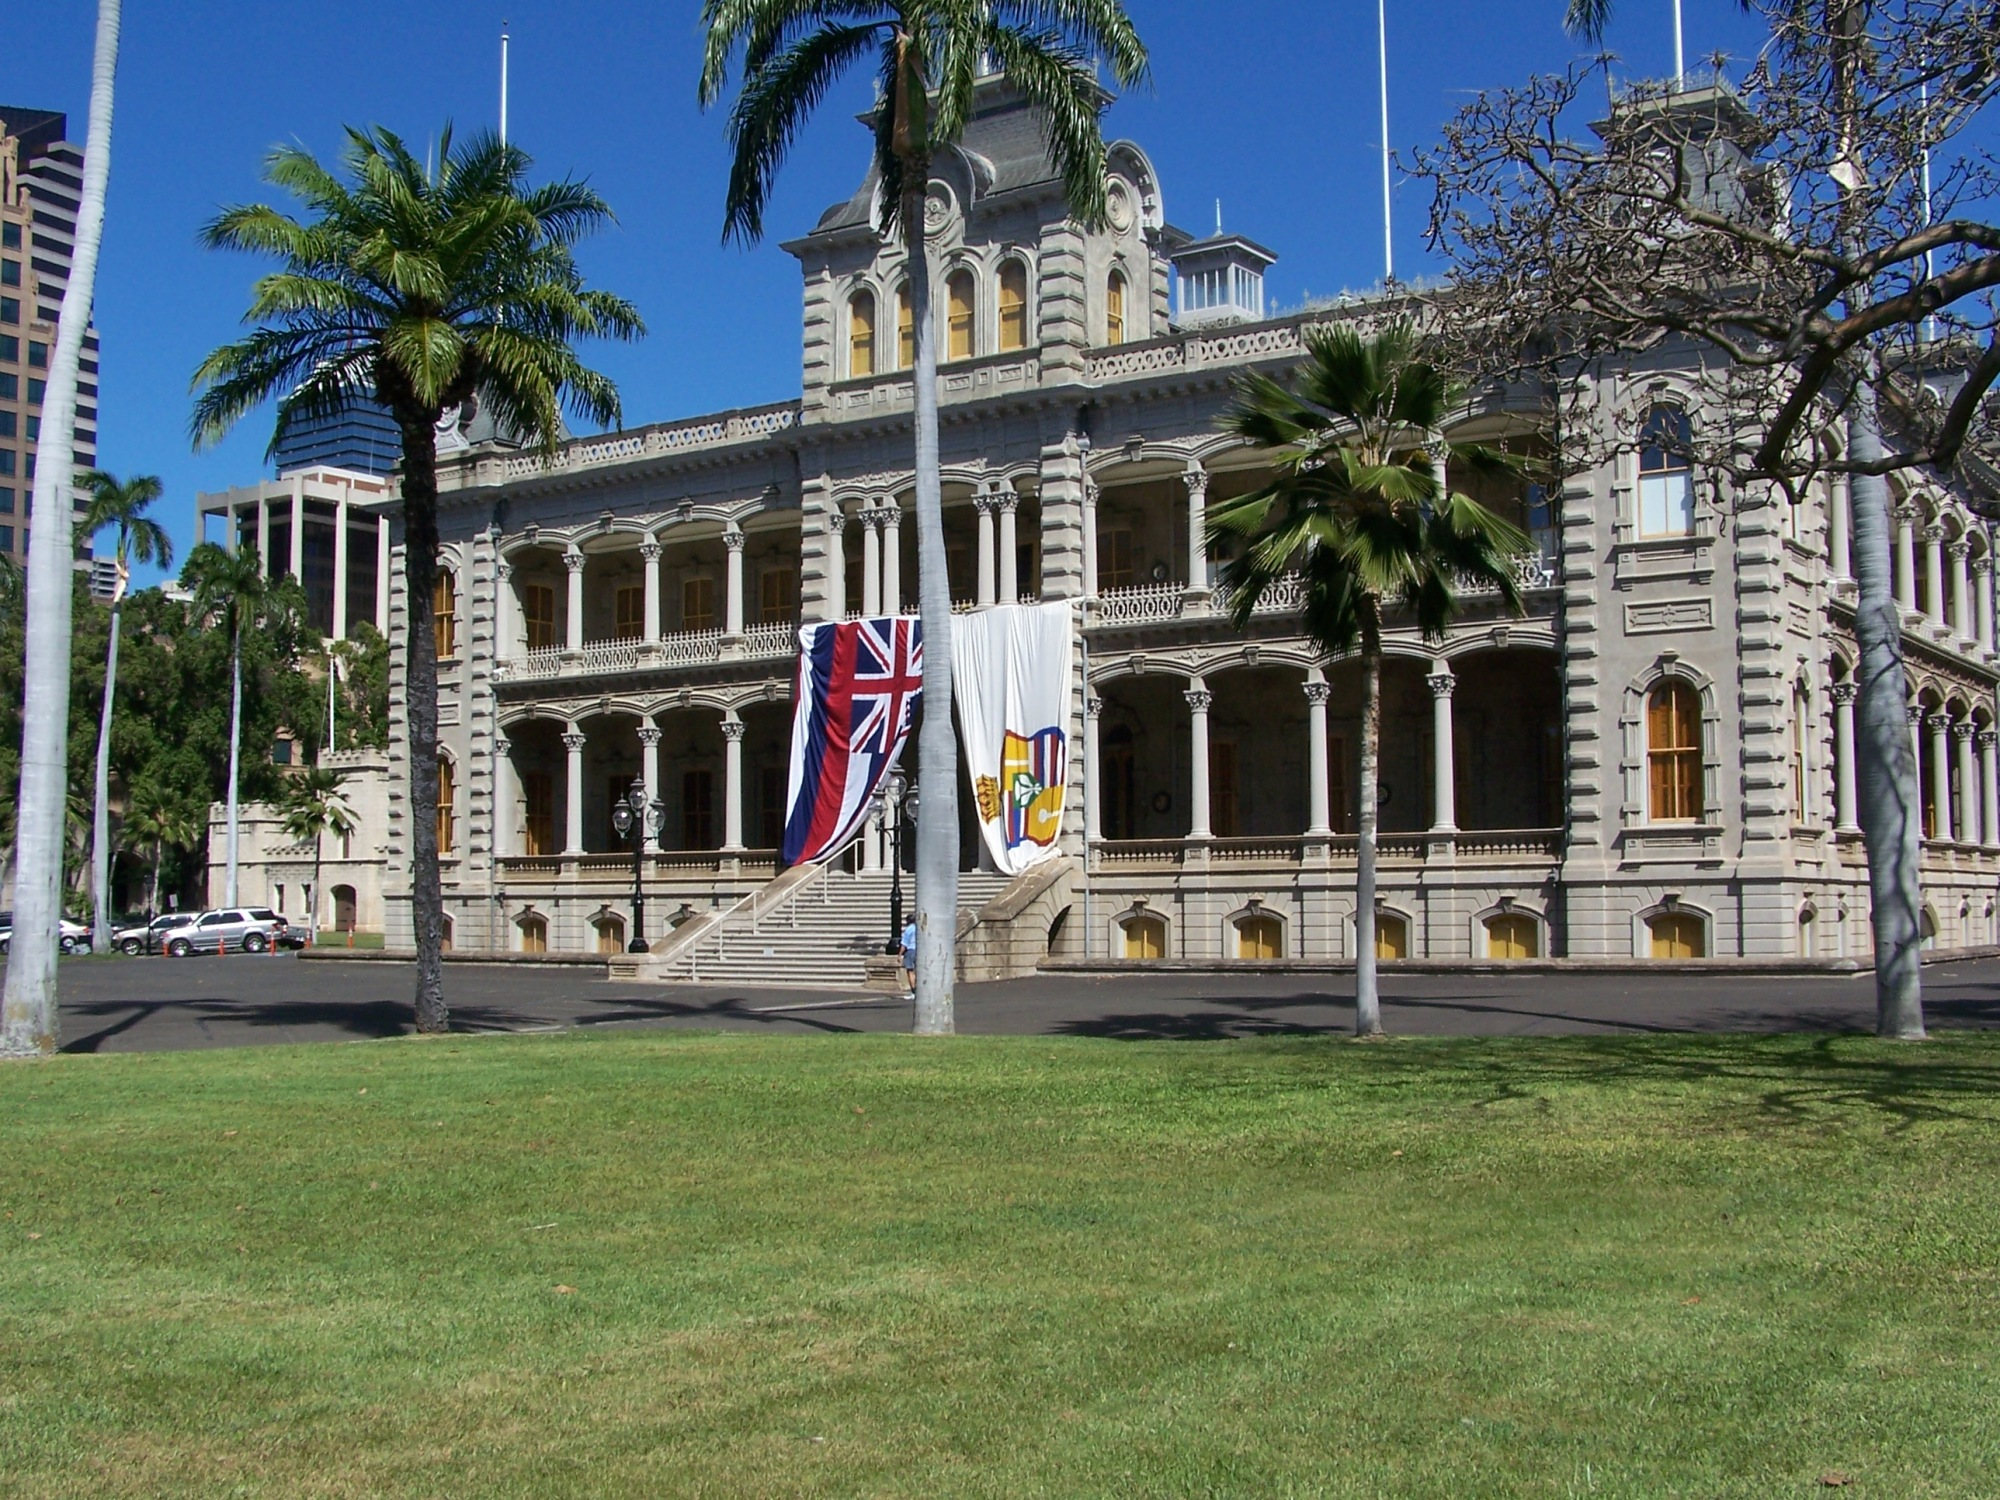 Iolani Palace, during the recognition of King Kalākaua's birthday Photo by Joel CC BY-ND 2.0